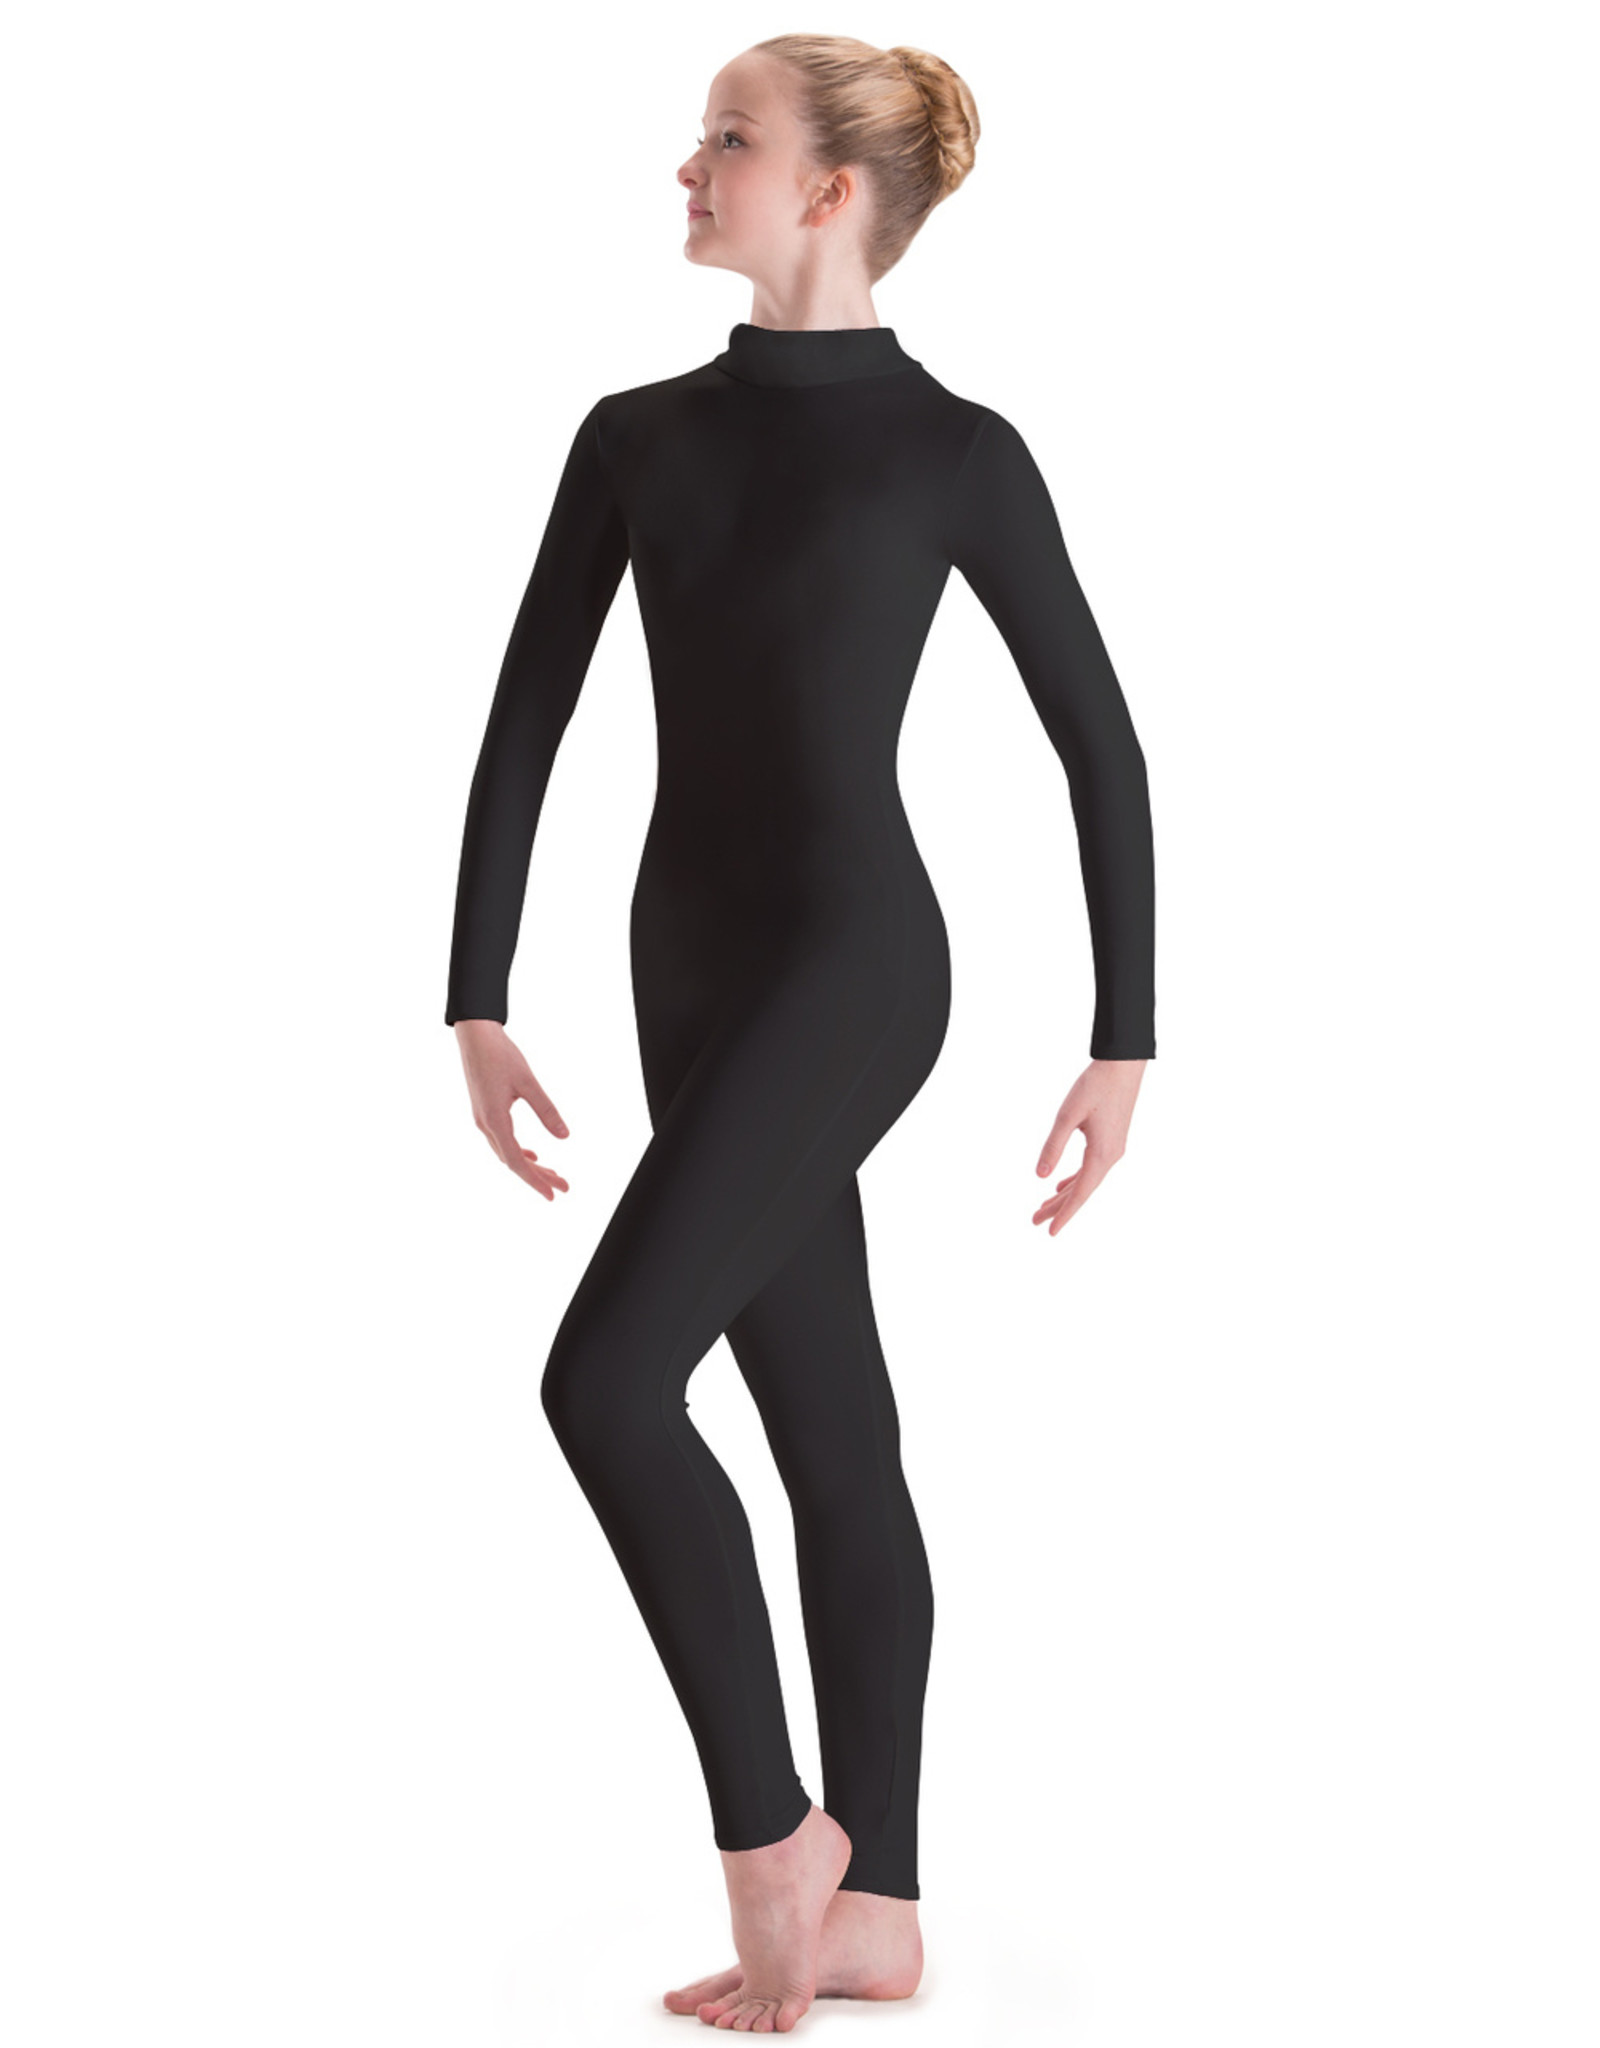 MOTIONWEAR TURTLENECK ZIP FRONT SILKSKYN LONG SLEEVE UNITARD (6662C)